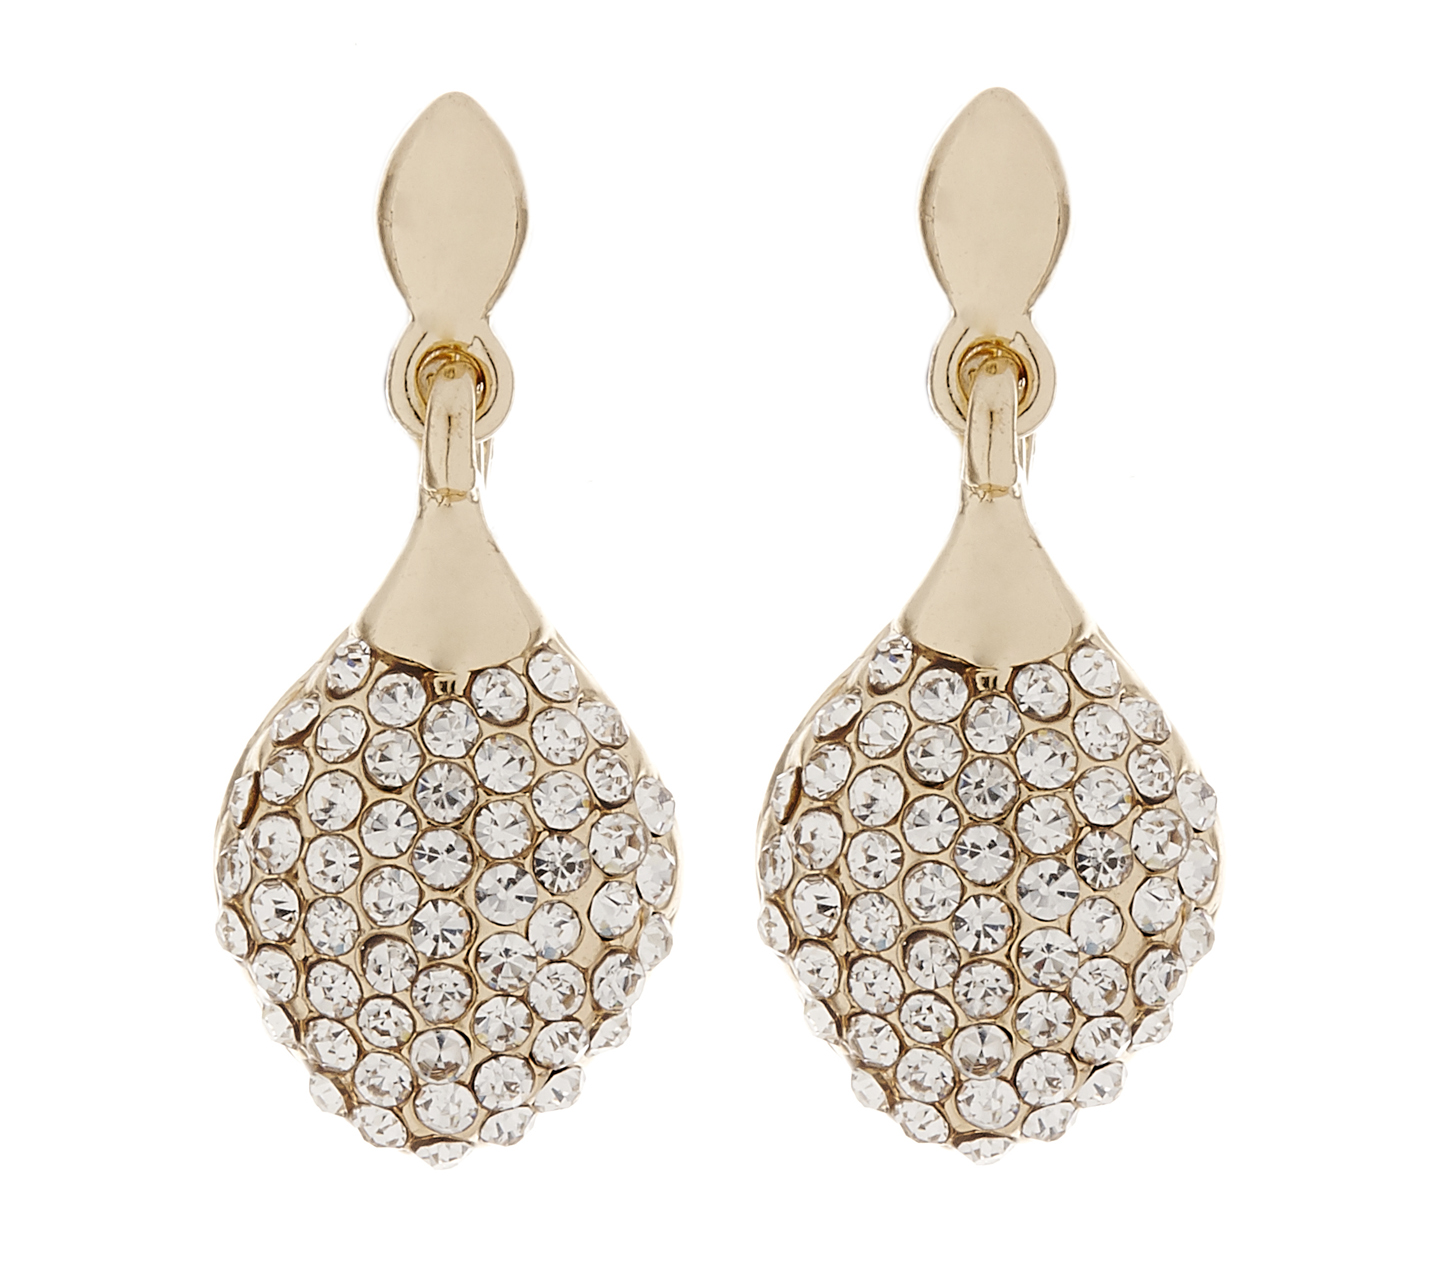 Clip On Earrings - Agnes G - gold drop earring with clear crystals